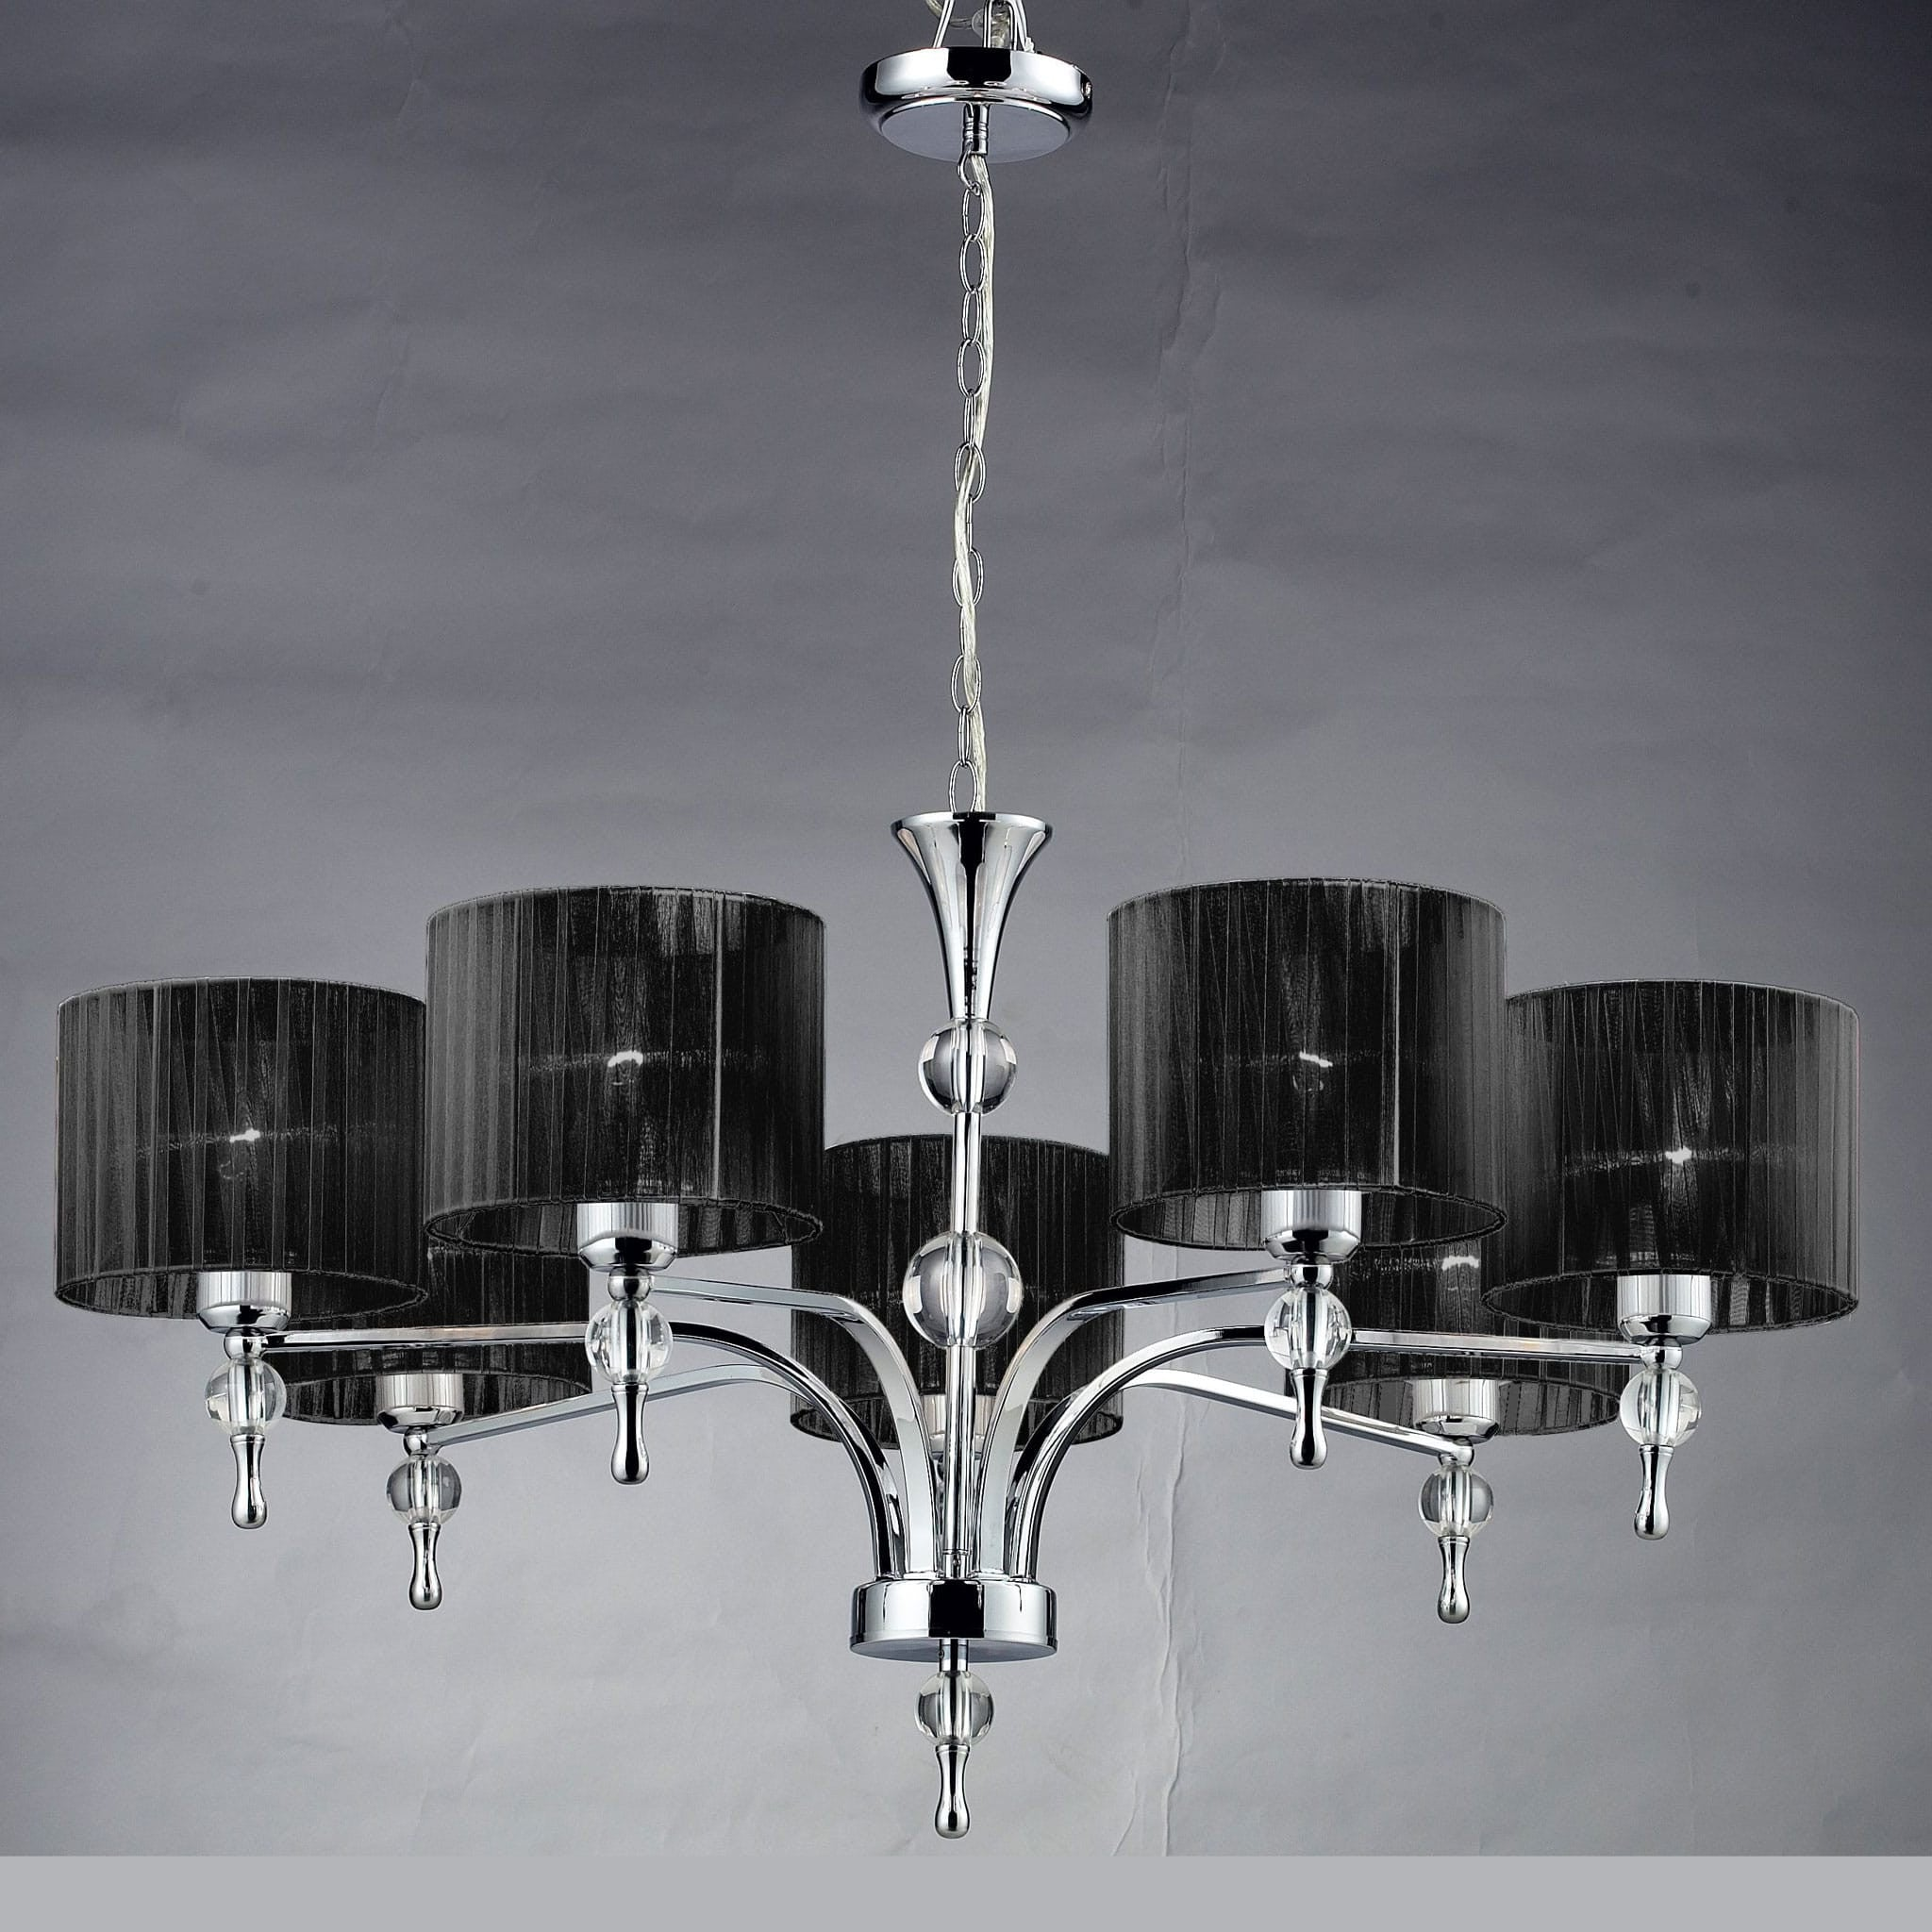 Azzardo impress 7 light chrome black shade chandelier chandelier azzardo impress 7 light chrome black shade chandelier 1976 7p bl mozeypictures